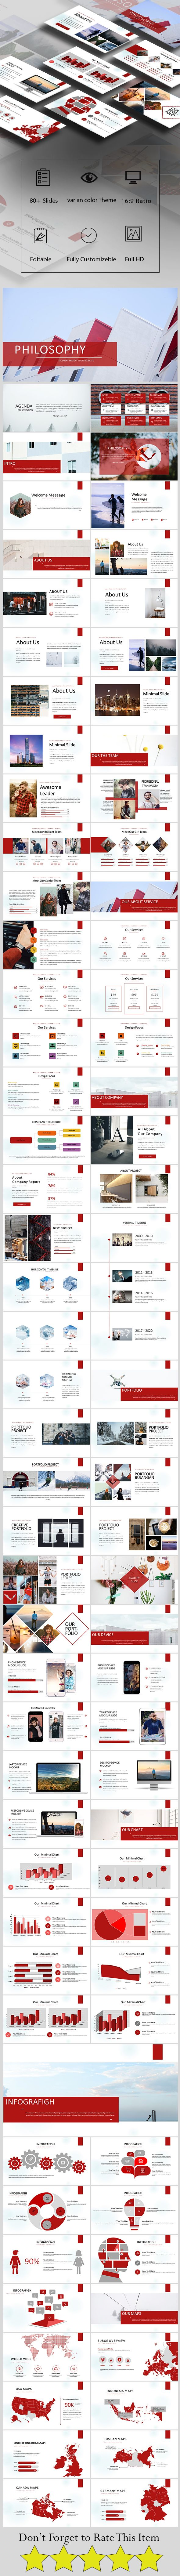 The 191 best powerpoint themes images on pinterest powerpoint philosophy multipurpose presentation powerpoint templates presentation templates toneelgroepblik Choice Image